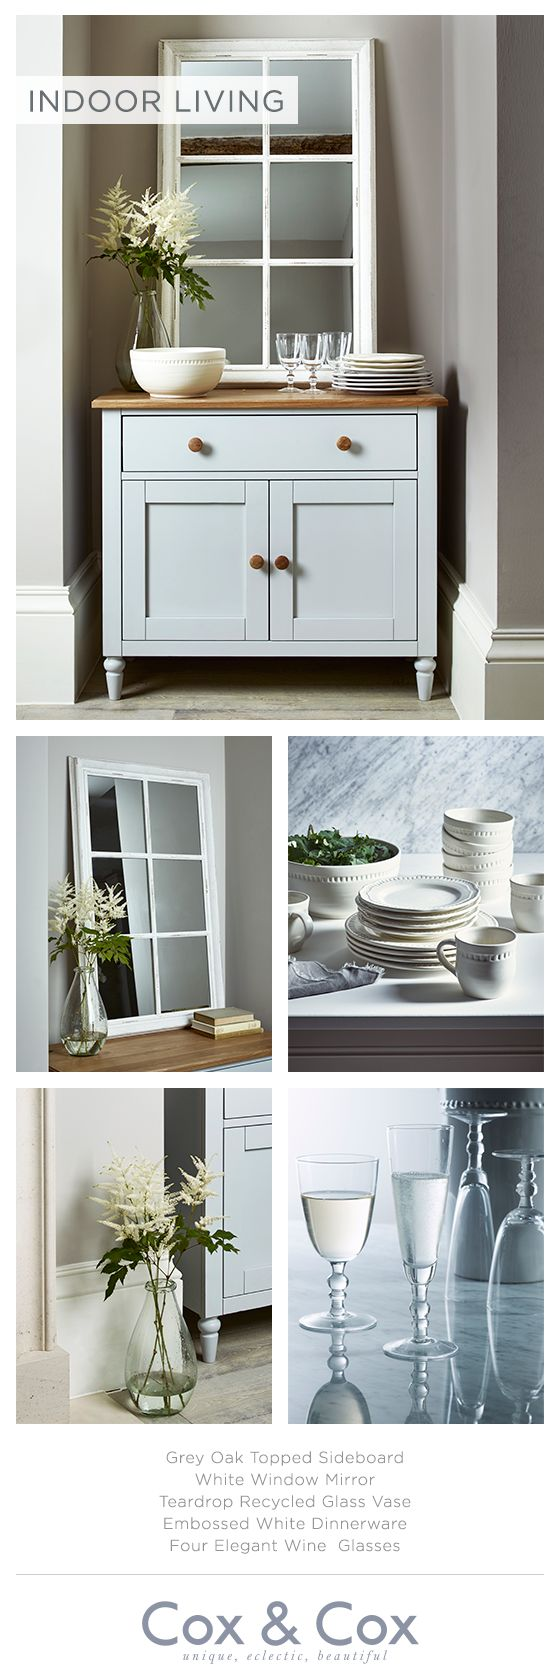 The 25+ best ideas about Mirrored Sideboard on Pinterest | Dining ... - Make a feature of your kitchen or hallway sideboard with a statement mirror  and elegant glassware